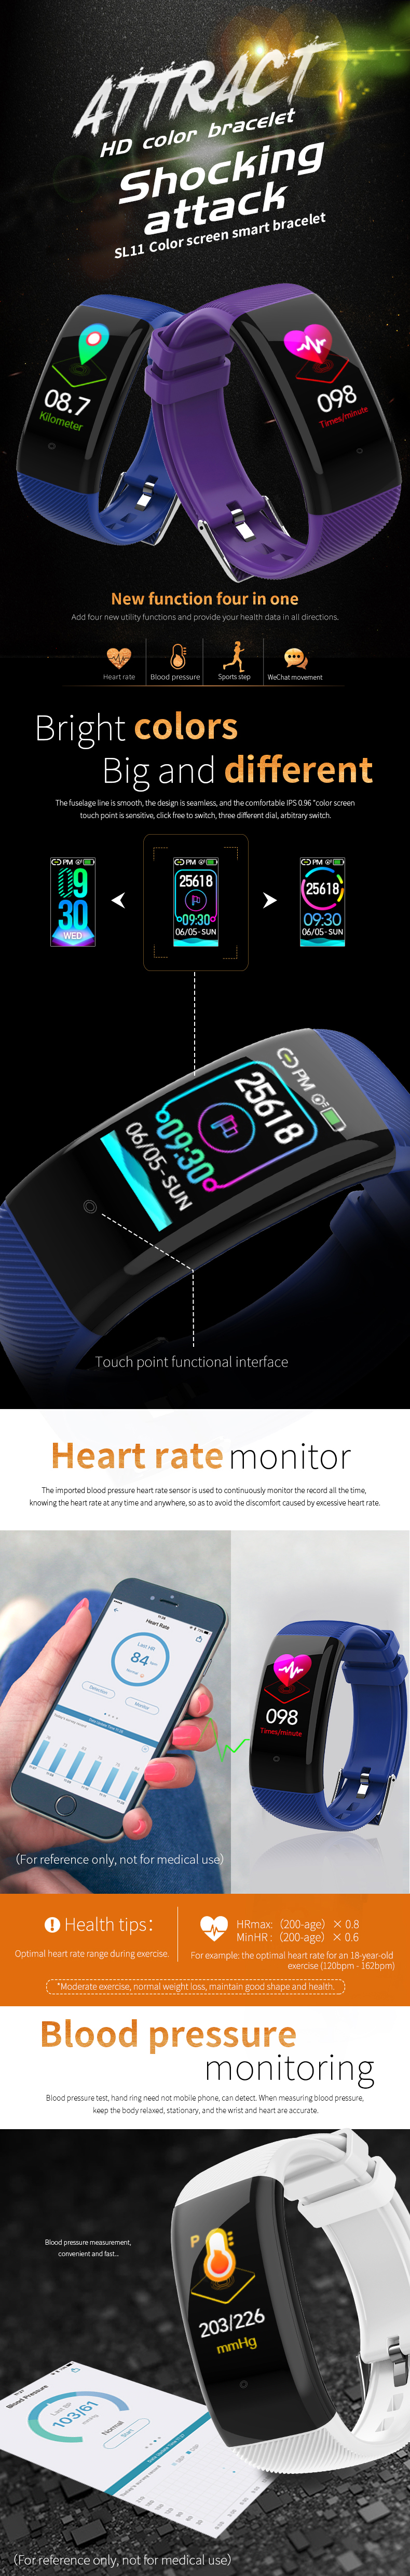 Bakeey-SL11-Multi-UI-Display-HD-Color-Screen-Wristband-Heart-Rate-and-Blood-Pressure-Monitor-IP68-Sm-1508679